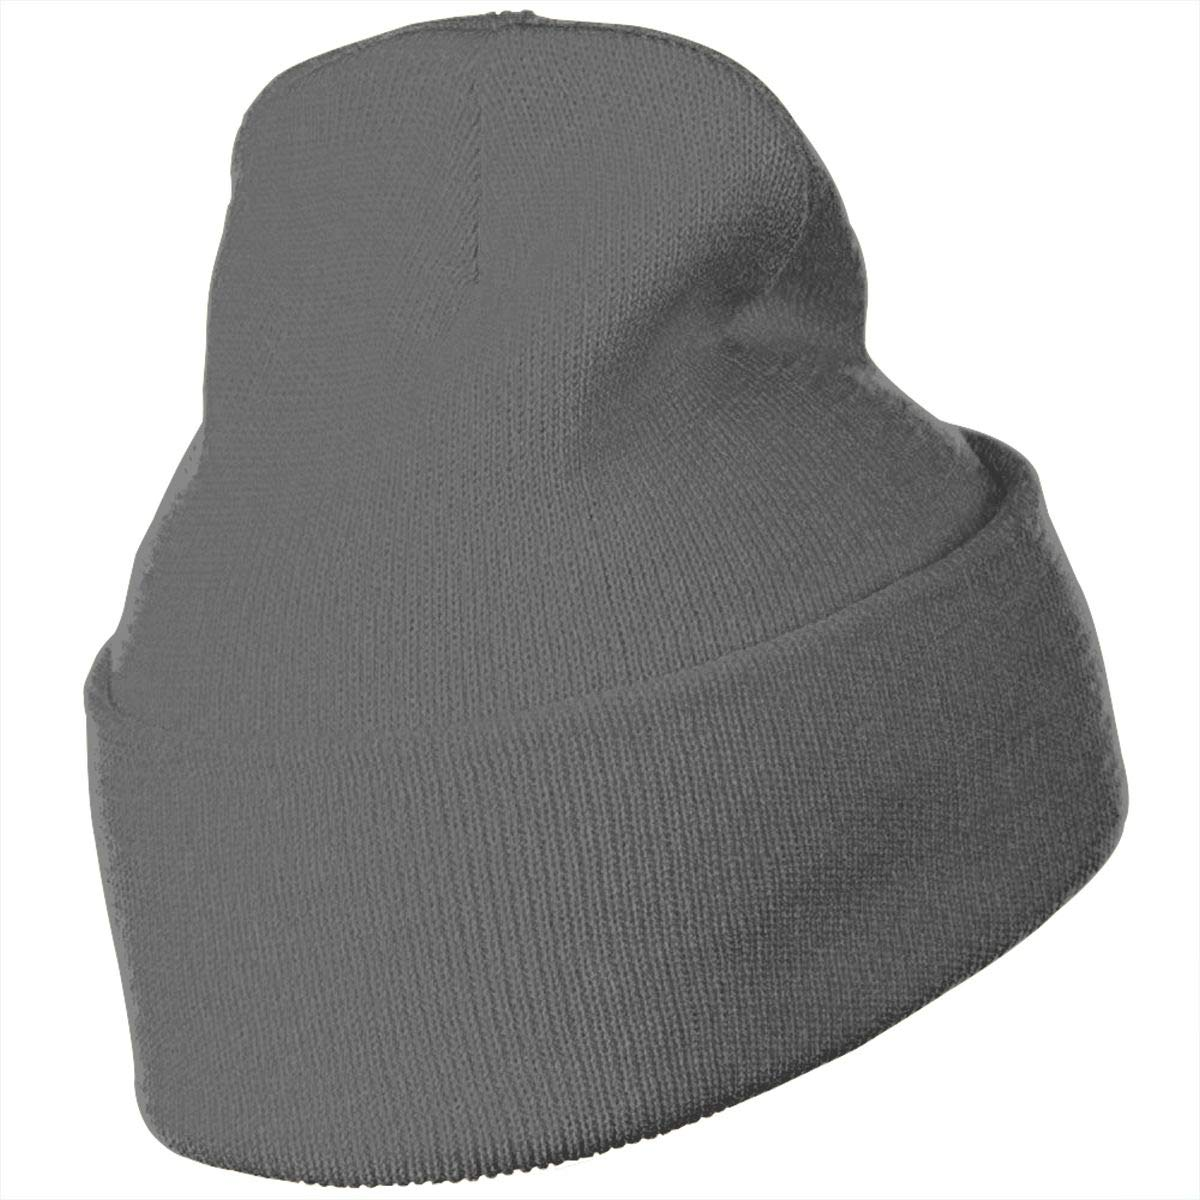 Eye Of The Angel Australia Black Beanie Hat for Men and Women Winter Warm Hats Knit Slouchy Thick Skull Cap